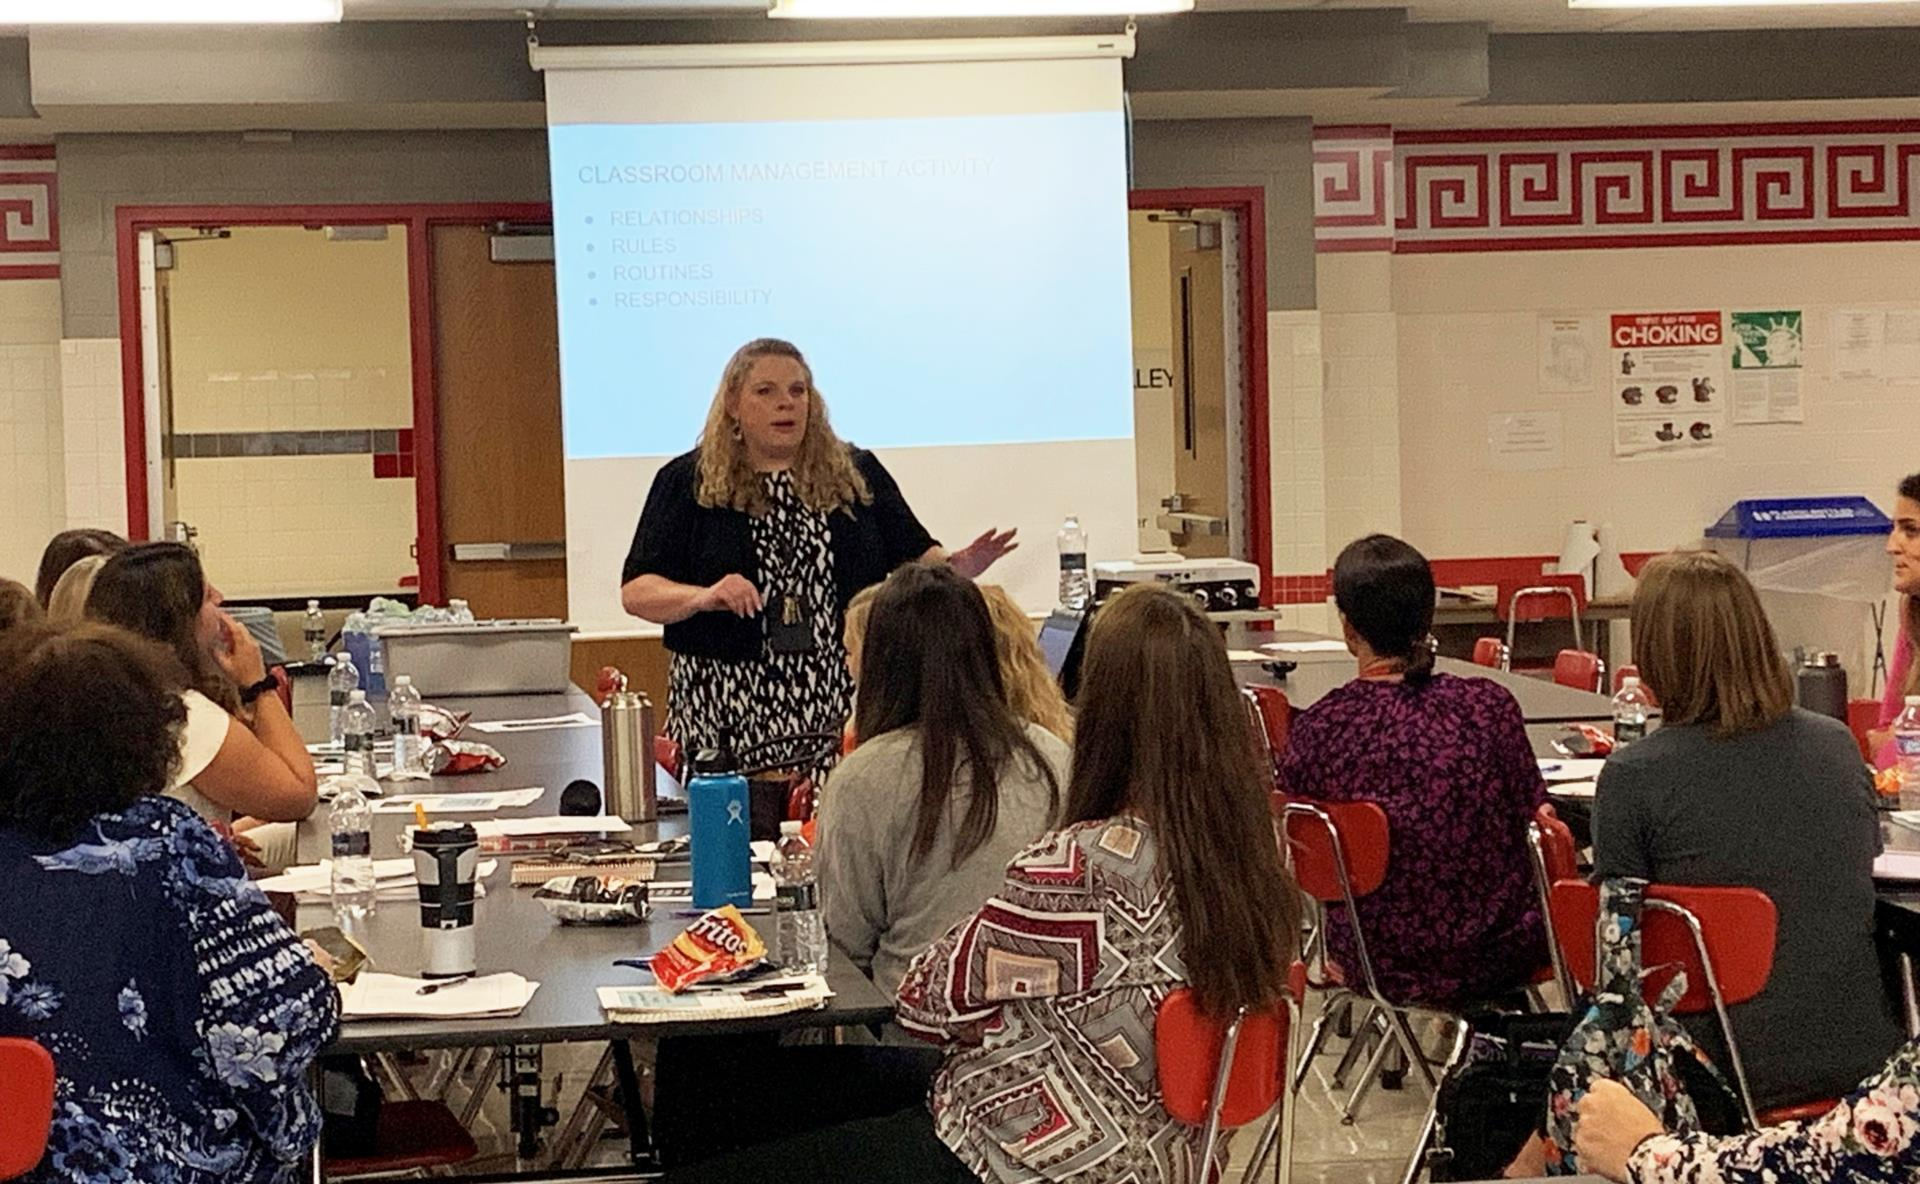 Assistant Superintendent speaking with teachers